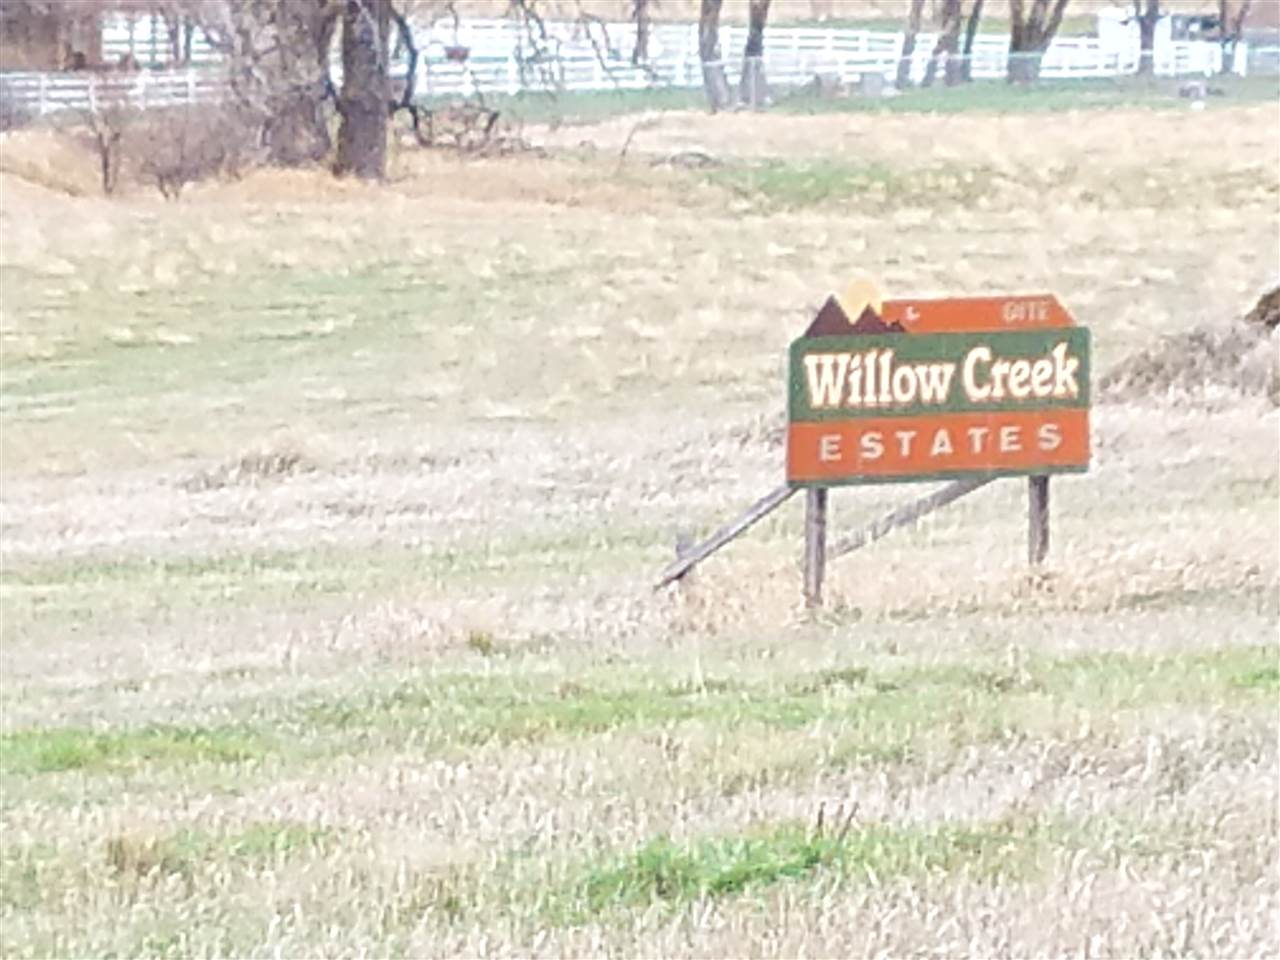 TBD Willow Creek